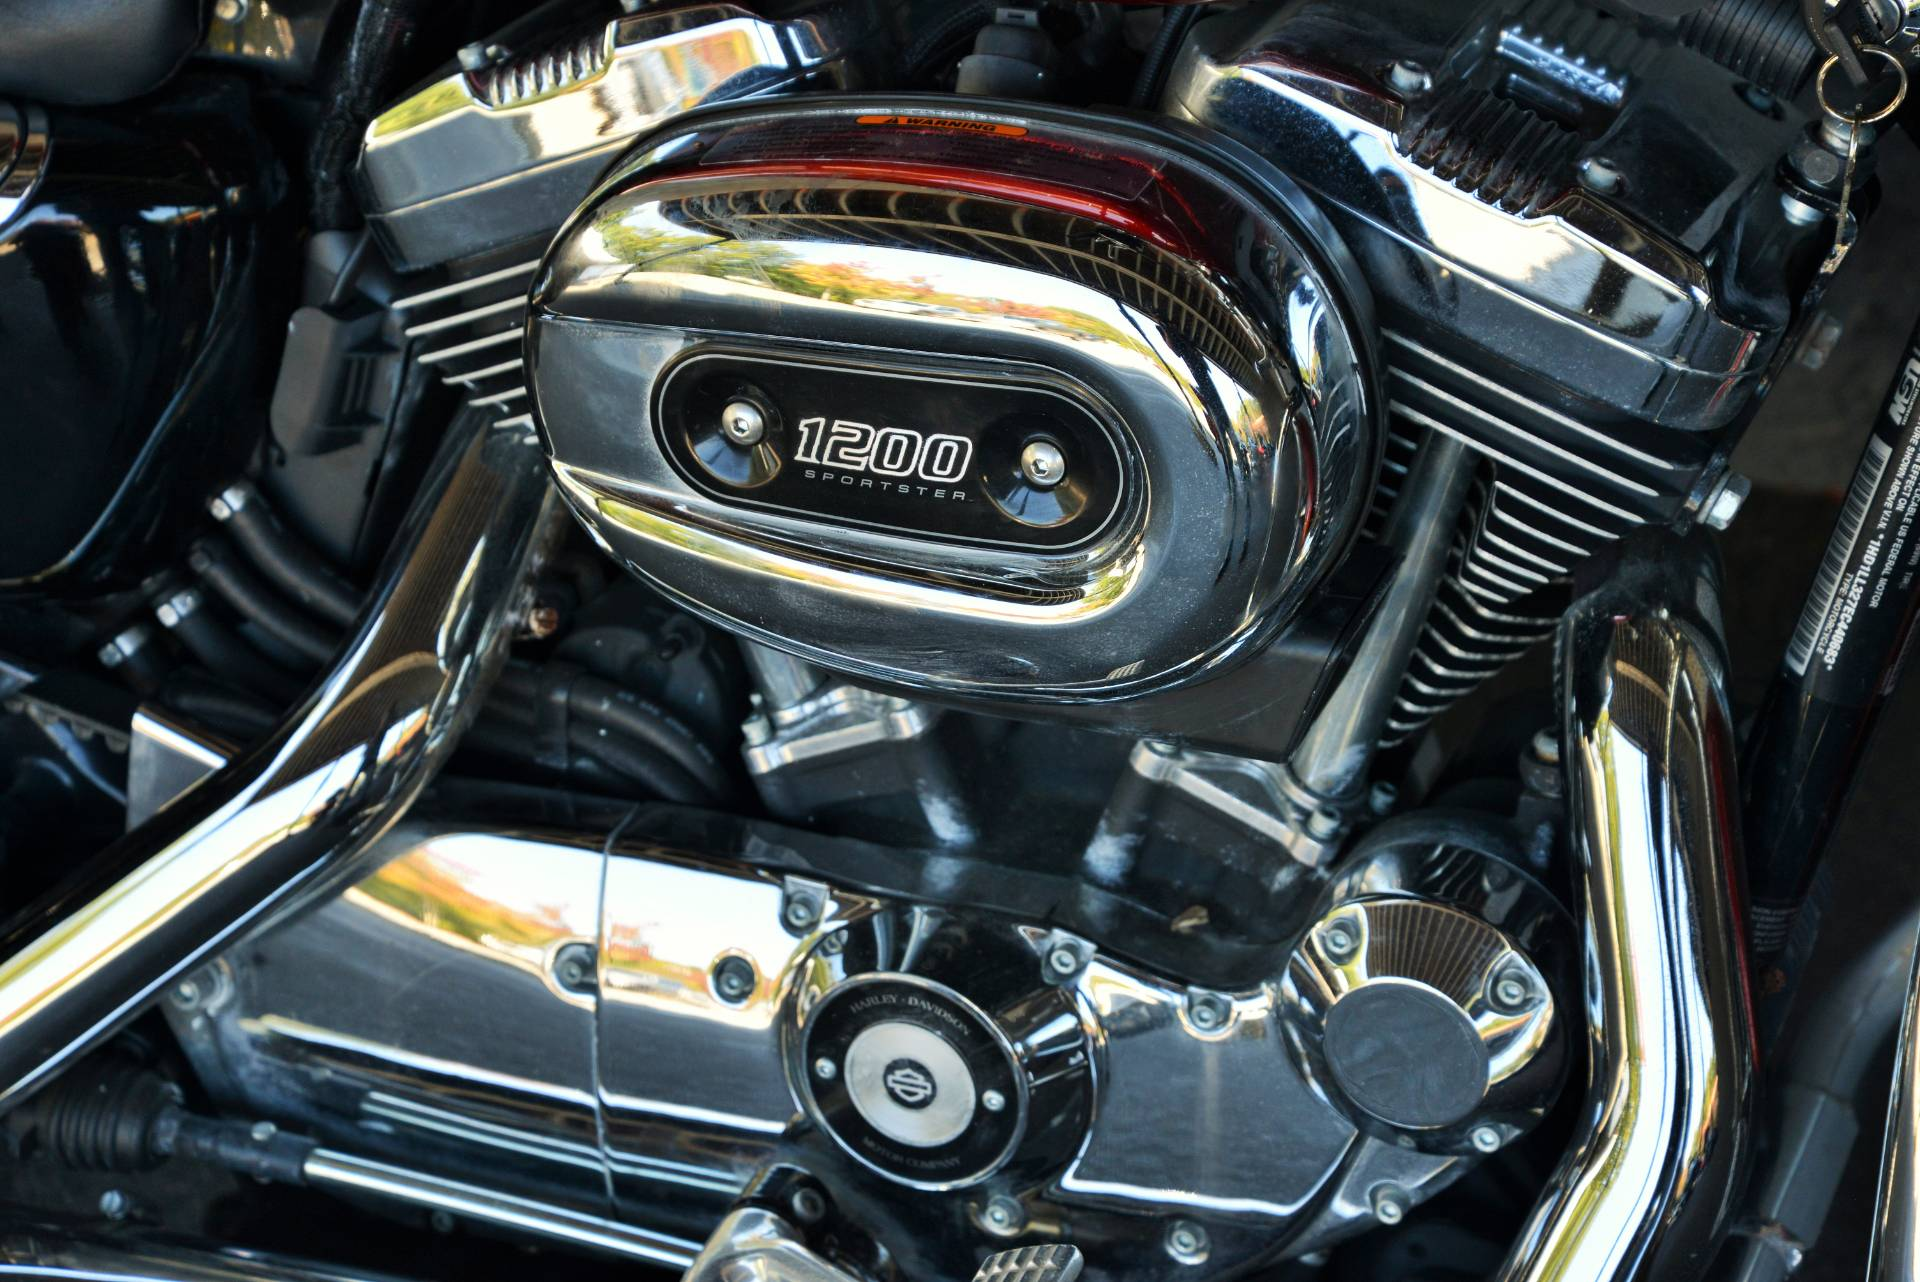 2014 Harley-Davidson 1200 SUPERLOW in Lakewood, New Jersey - Photo 7